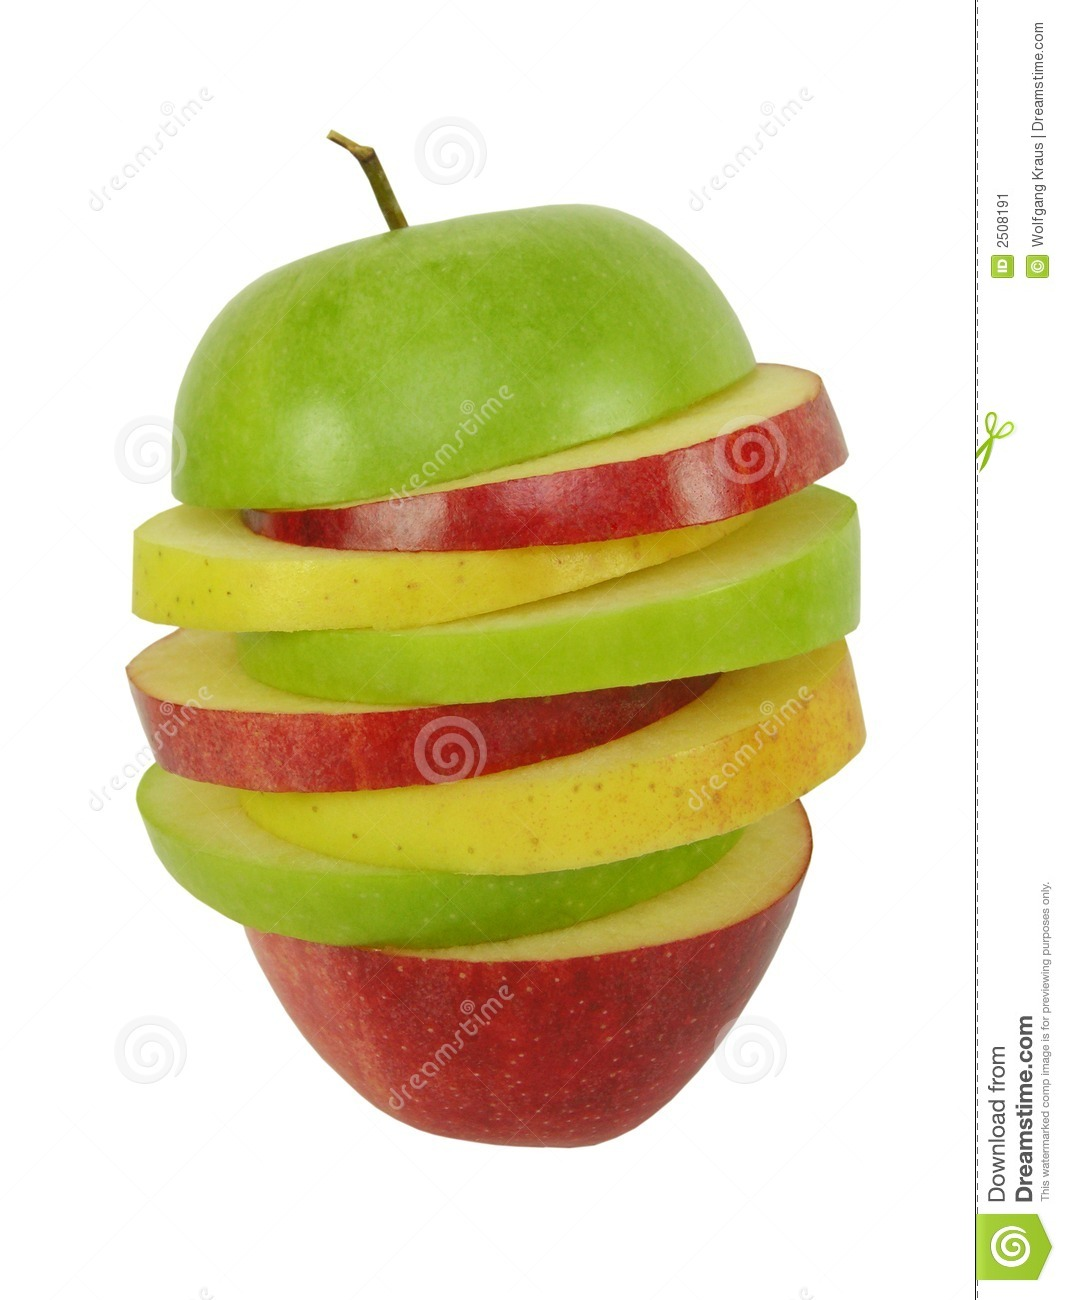 mixed-apple-slices-2508191.jpg